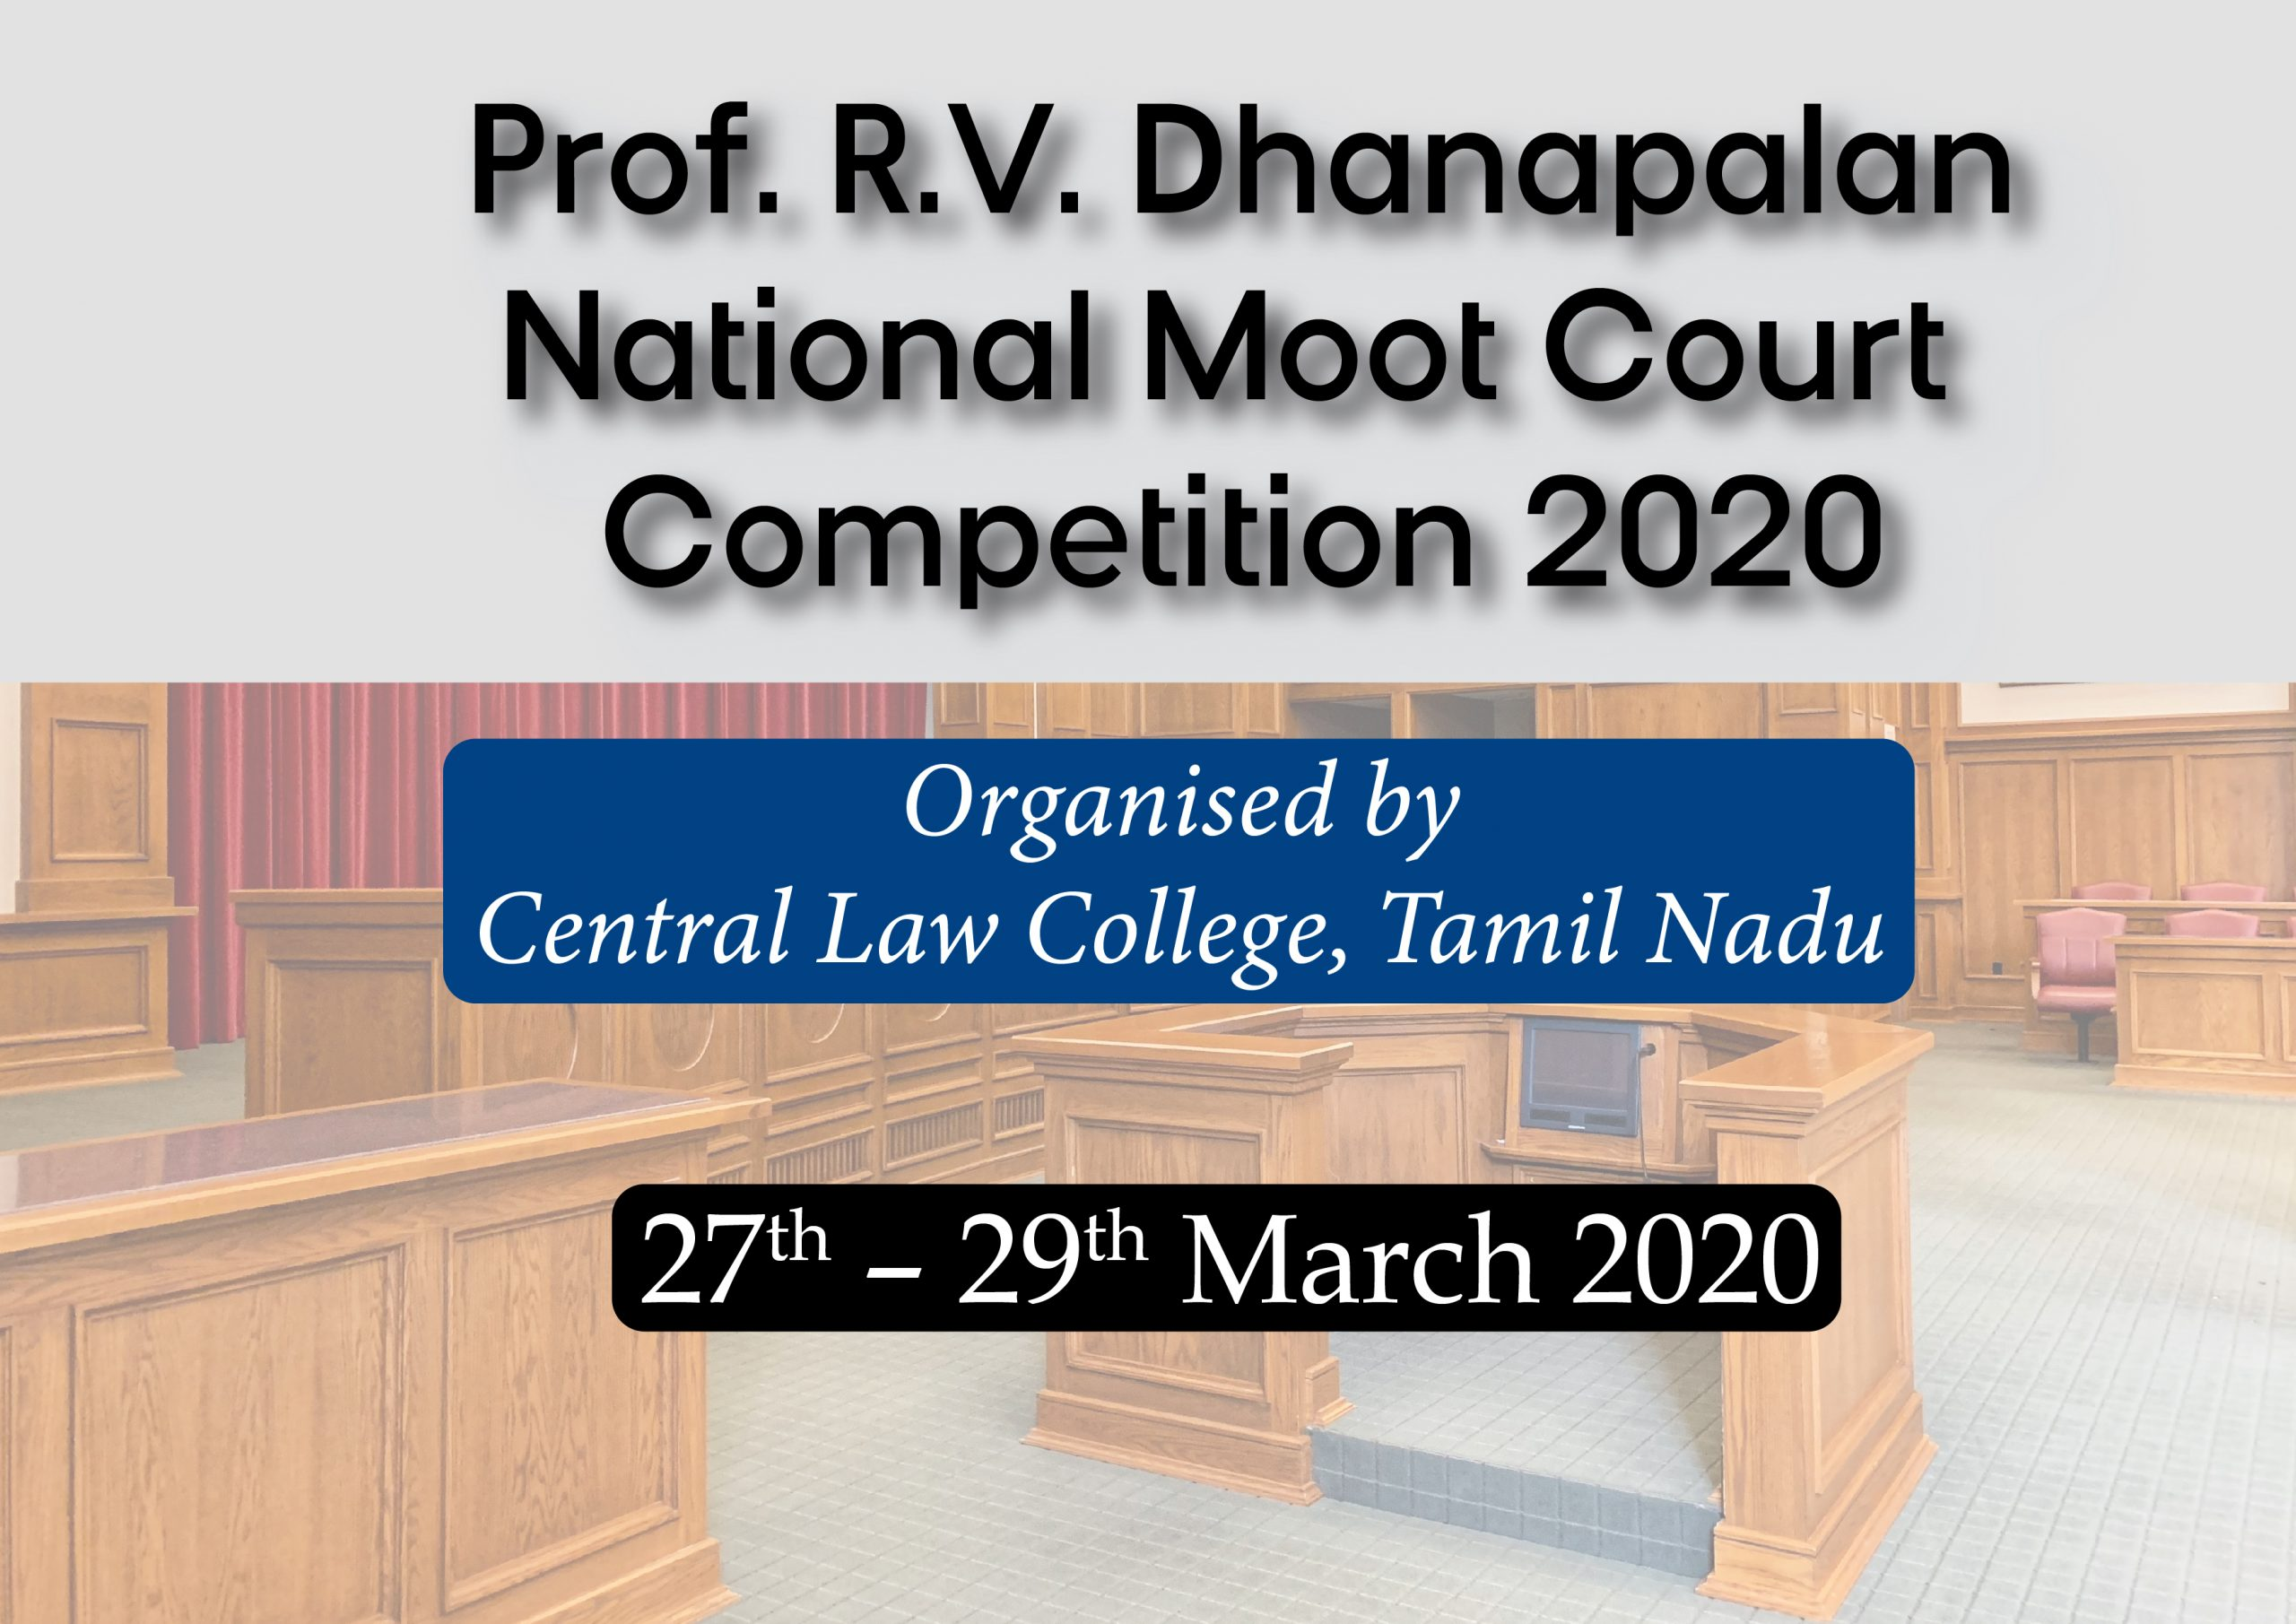 Prof. R.V. Dhanapalan National Moot Court Competition 2020